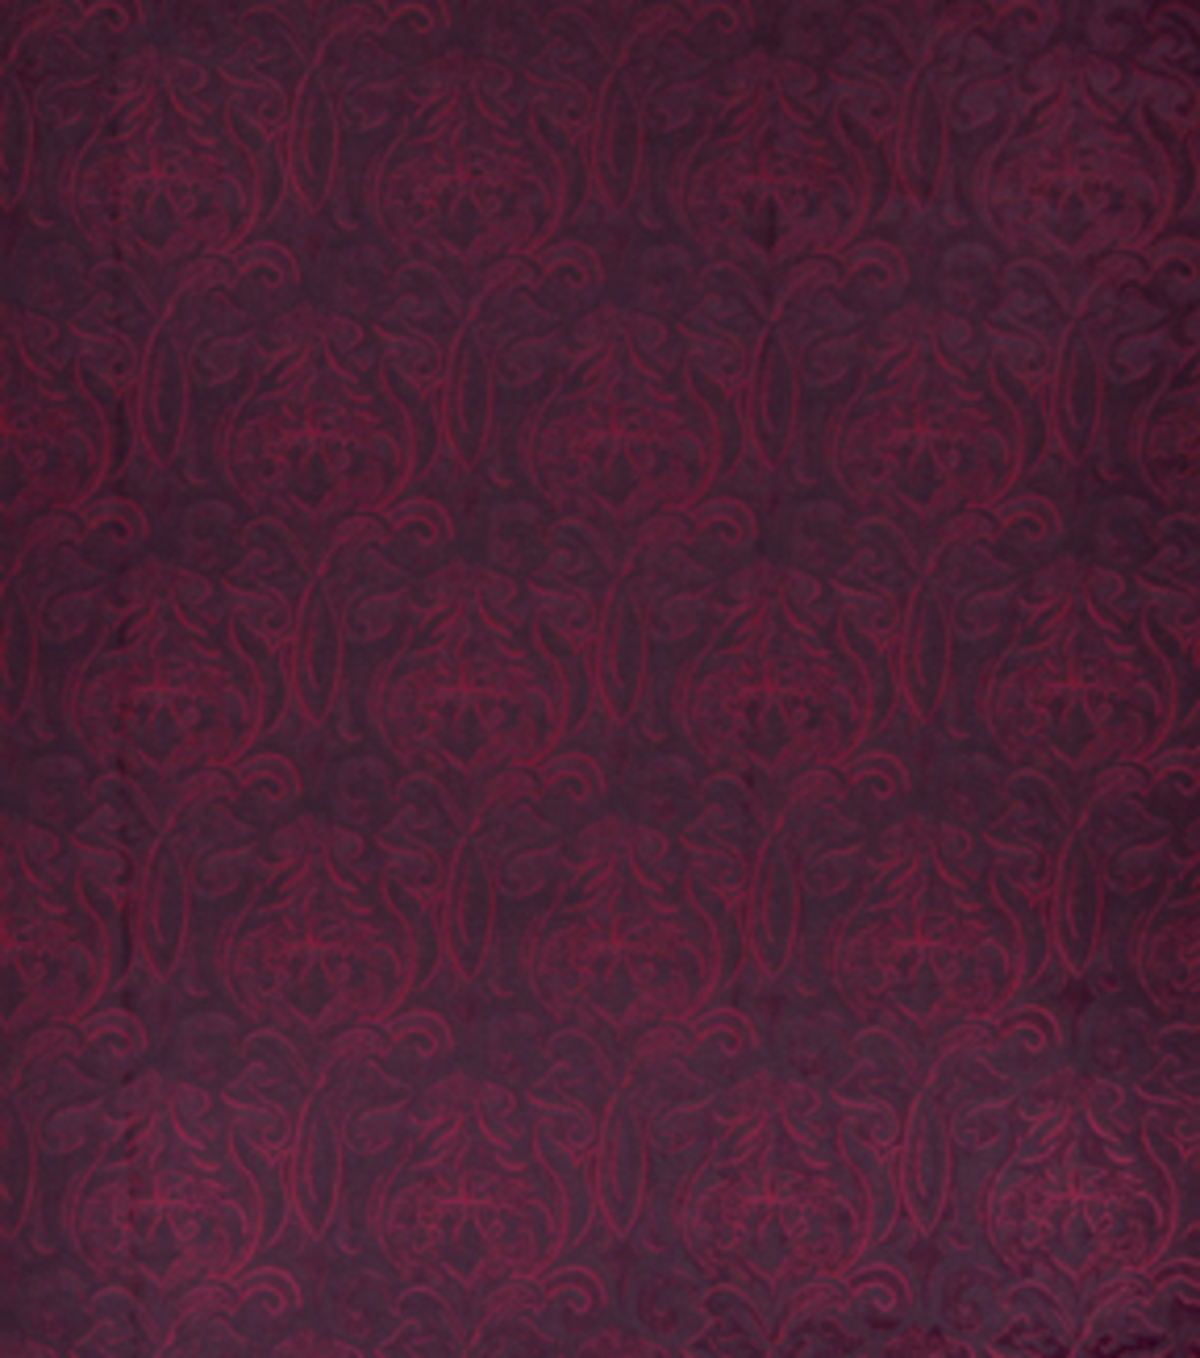 Home Decor 8\u0022x8\u0022 Fabric Swatch-Eaton Square Cupboard Garnet